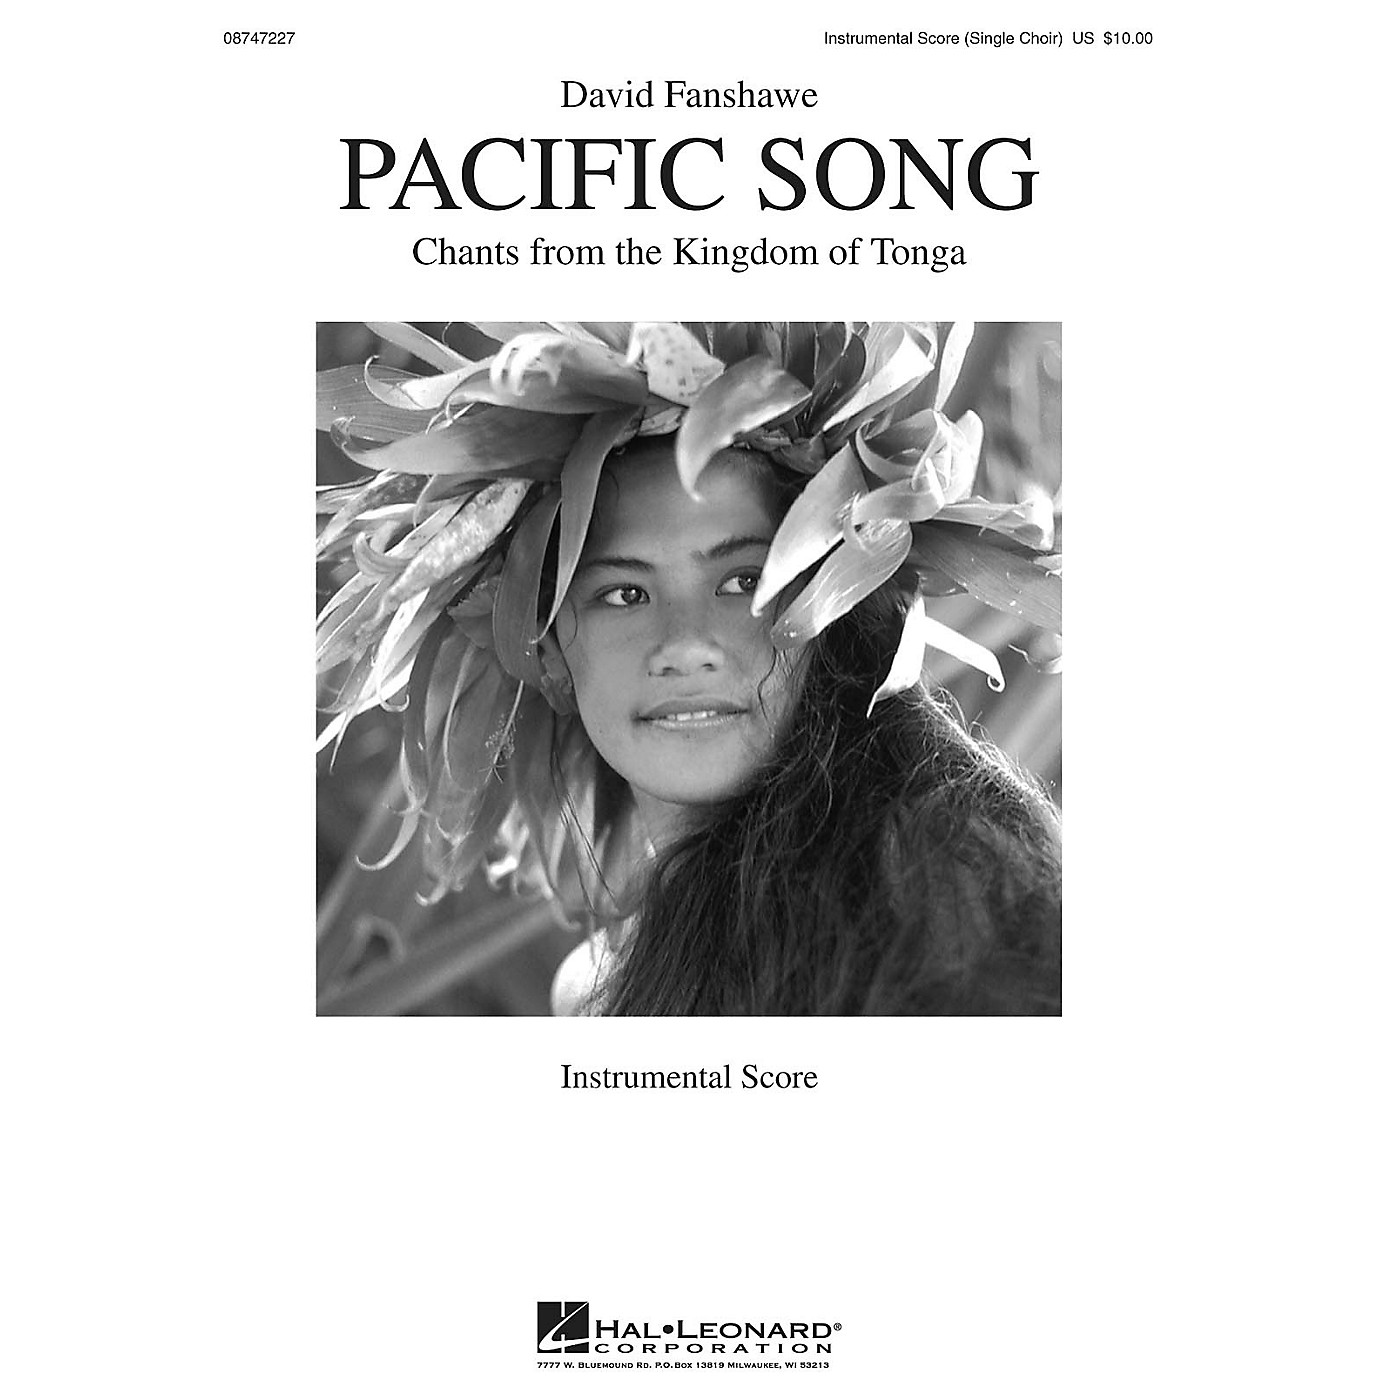 Hal Leonard Pacific Song (Chants from the Kingdom of Tonga) Score composed by David Fanshawe thumbnail